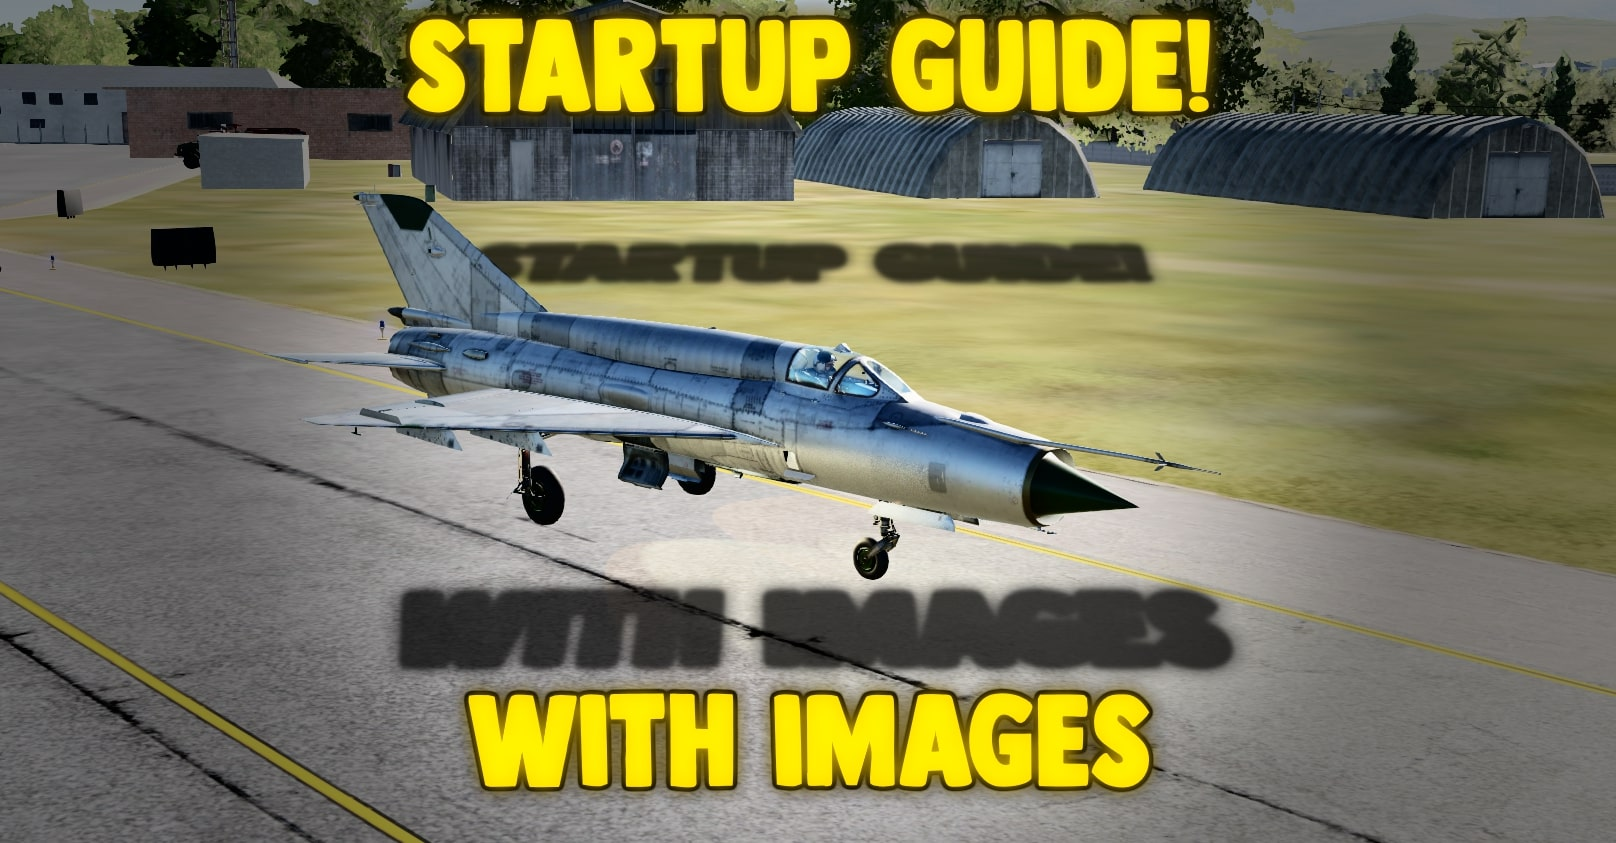 Mig 21 startup kneeboard with images!